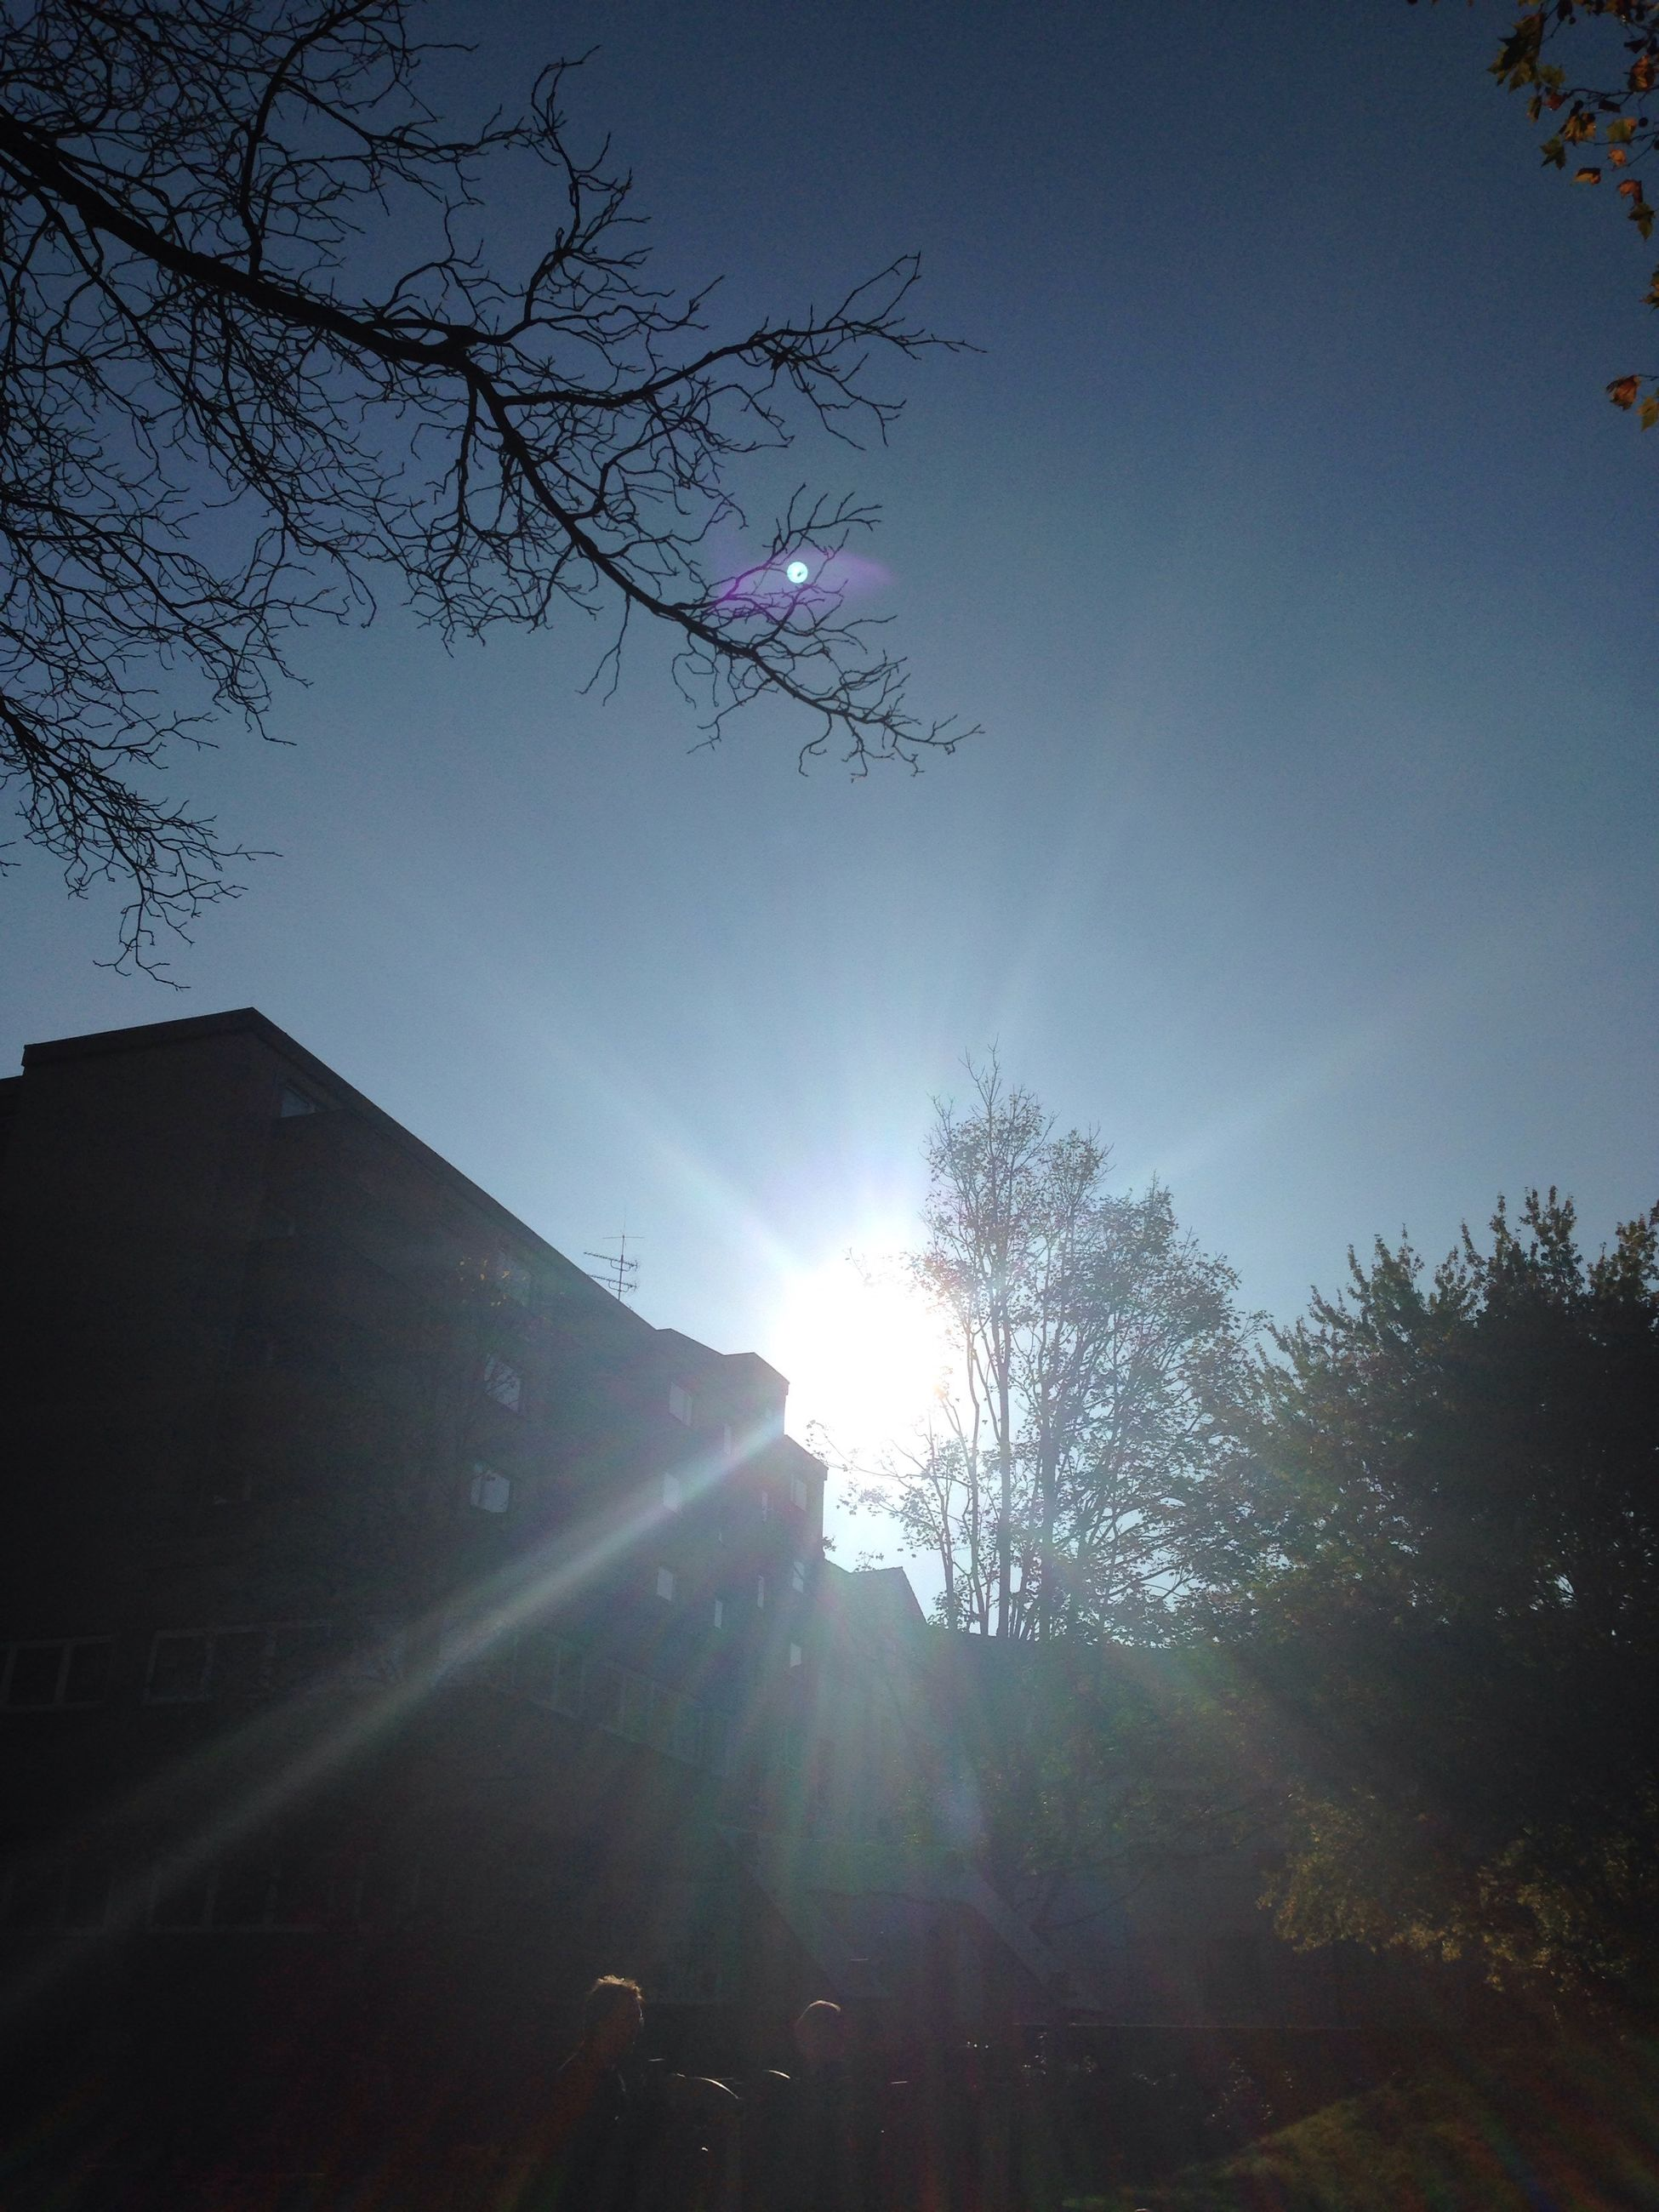 sun, low angle view, sunbeam, tree, lens flare, sunlight, silhouette, sky, clear sky, bright, blue, nature, branch, beauty in nature, sunny, tranquility, growth, day, back lit, outdoors